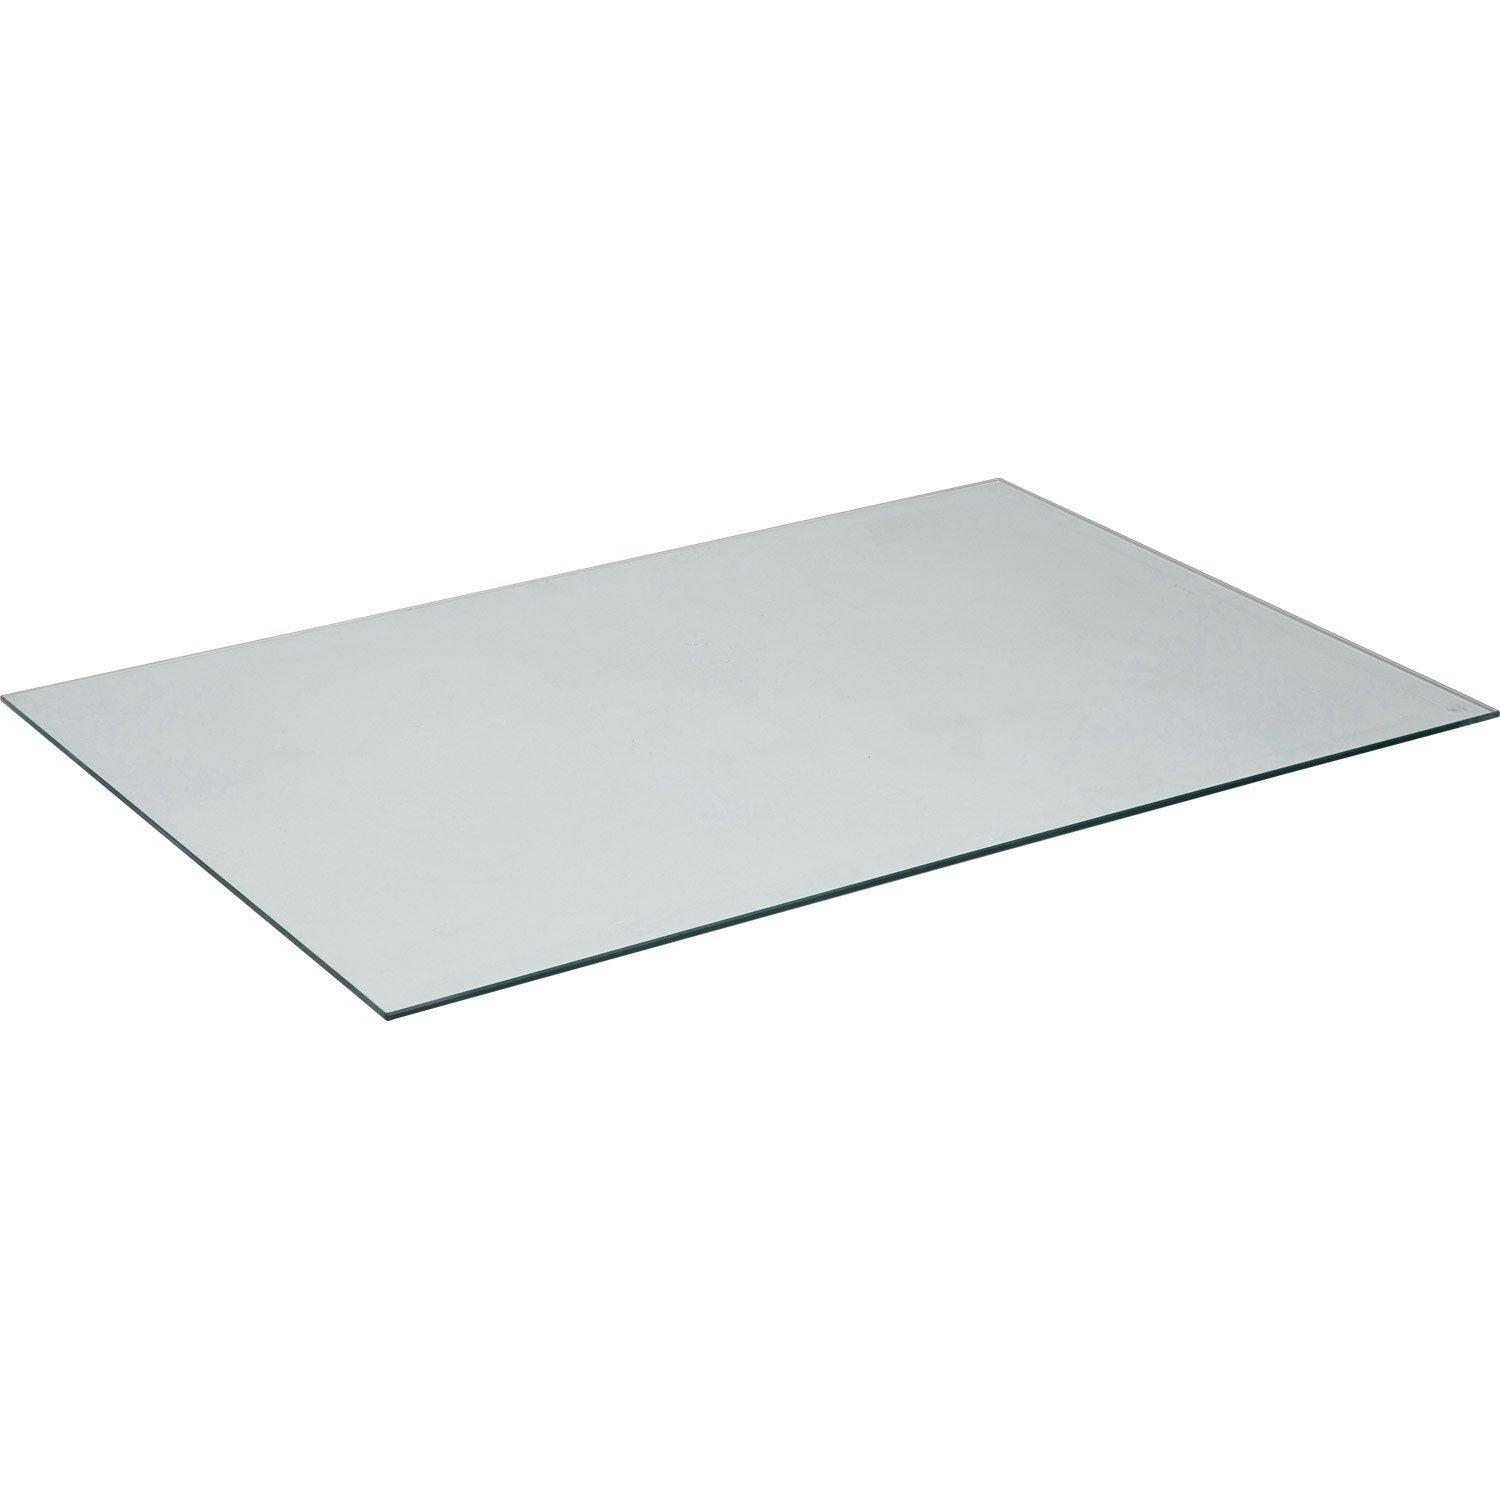 Plateau de table verre x cm x ep 8 mm leroy merlin - Ikea plateau de table ...